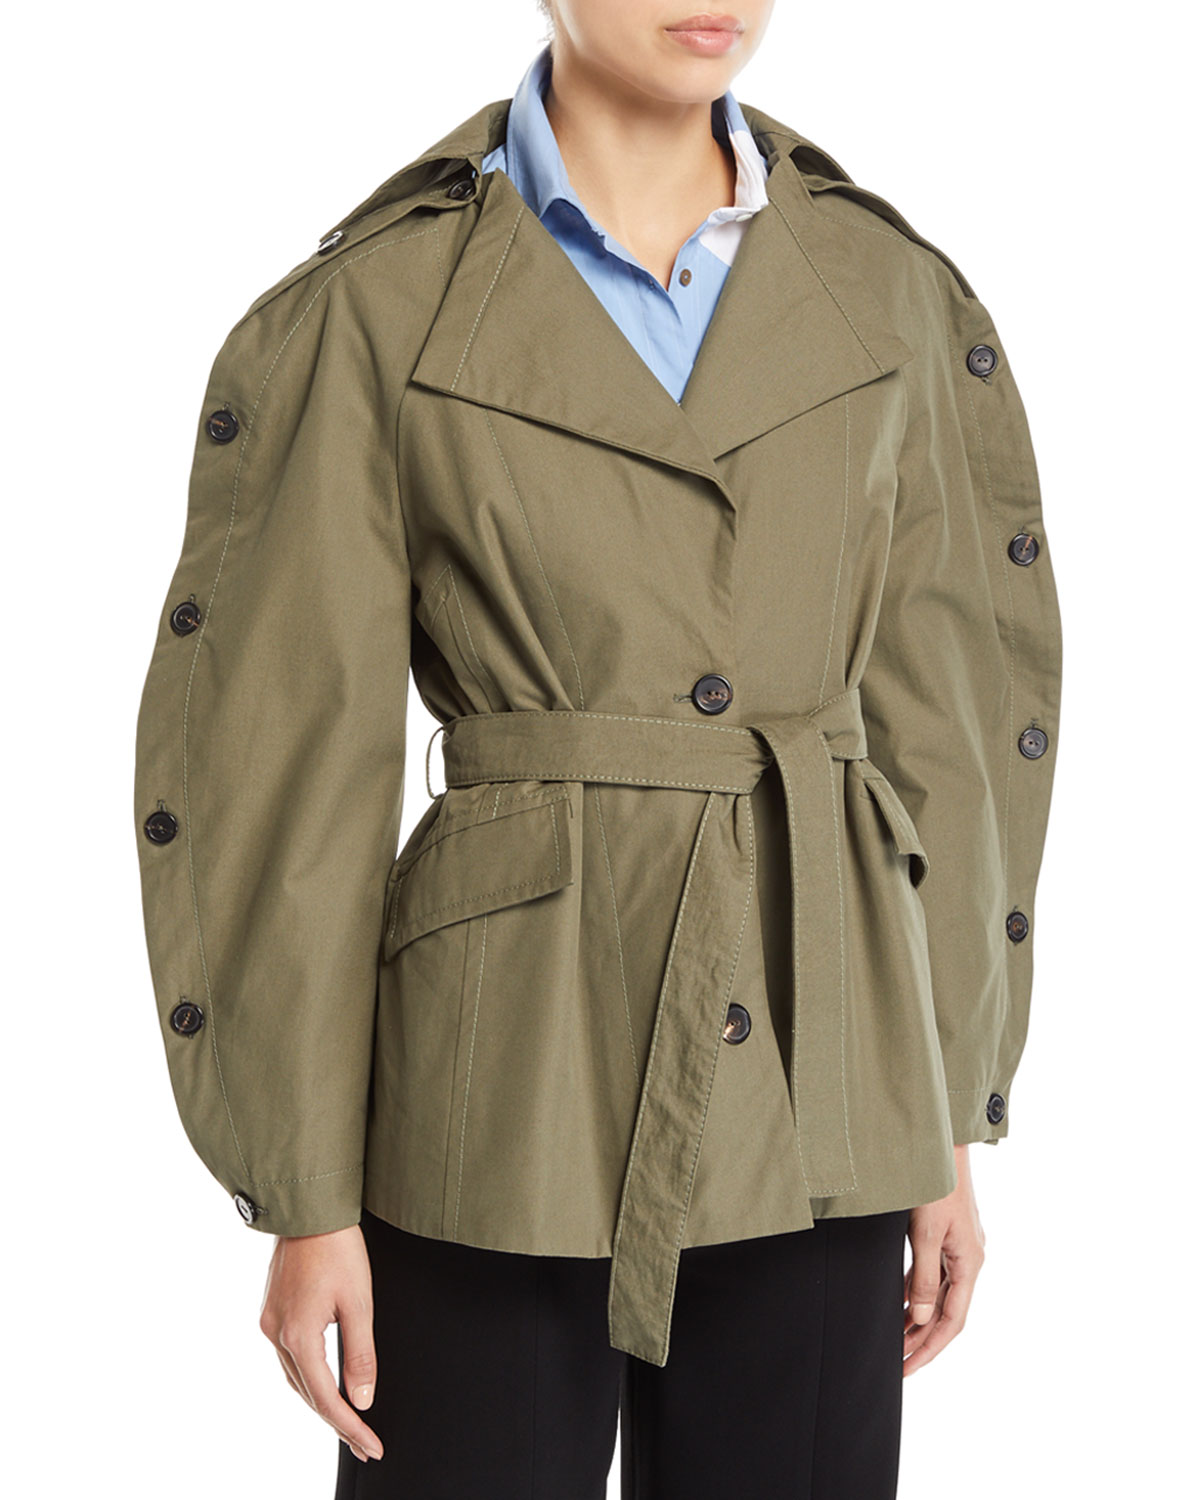 PALMER//HARDING Ring Button-Sleeve Belted Cotton Jacket in Green